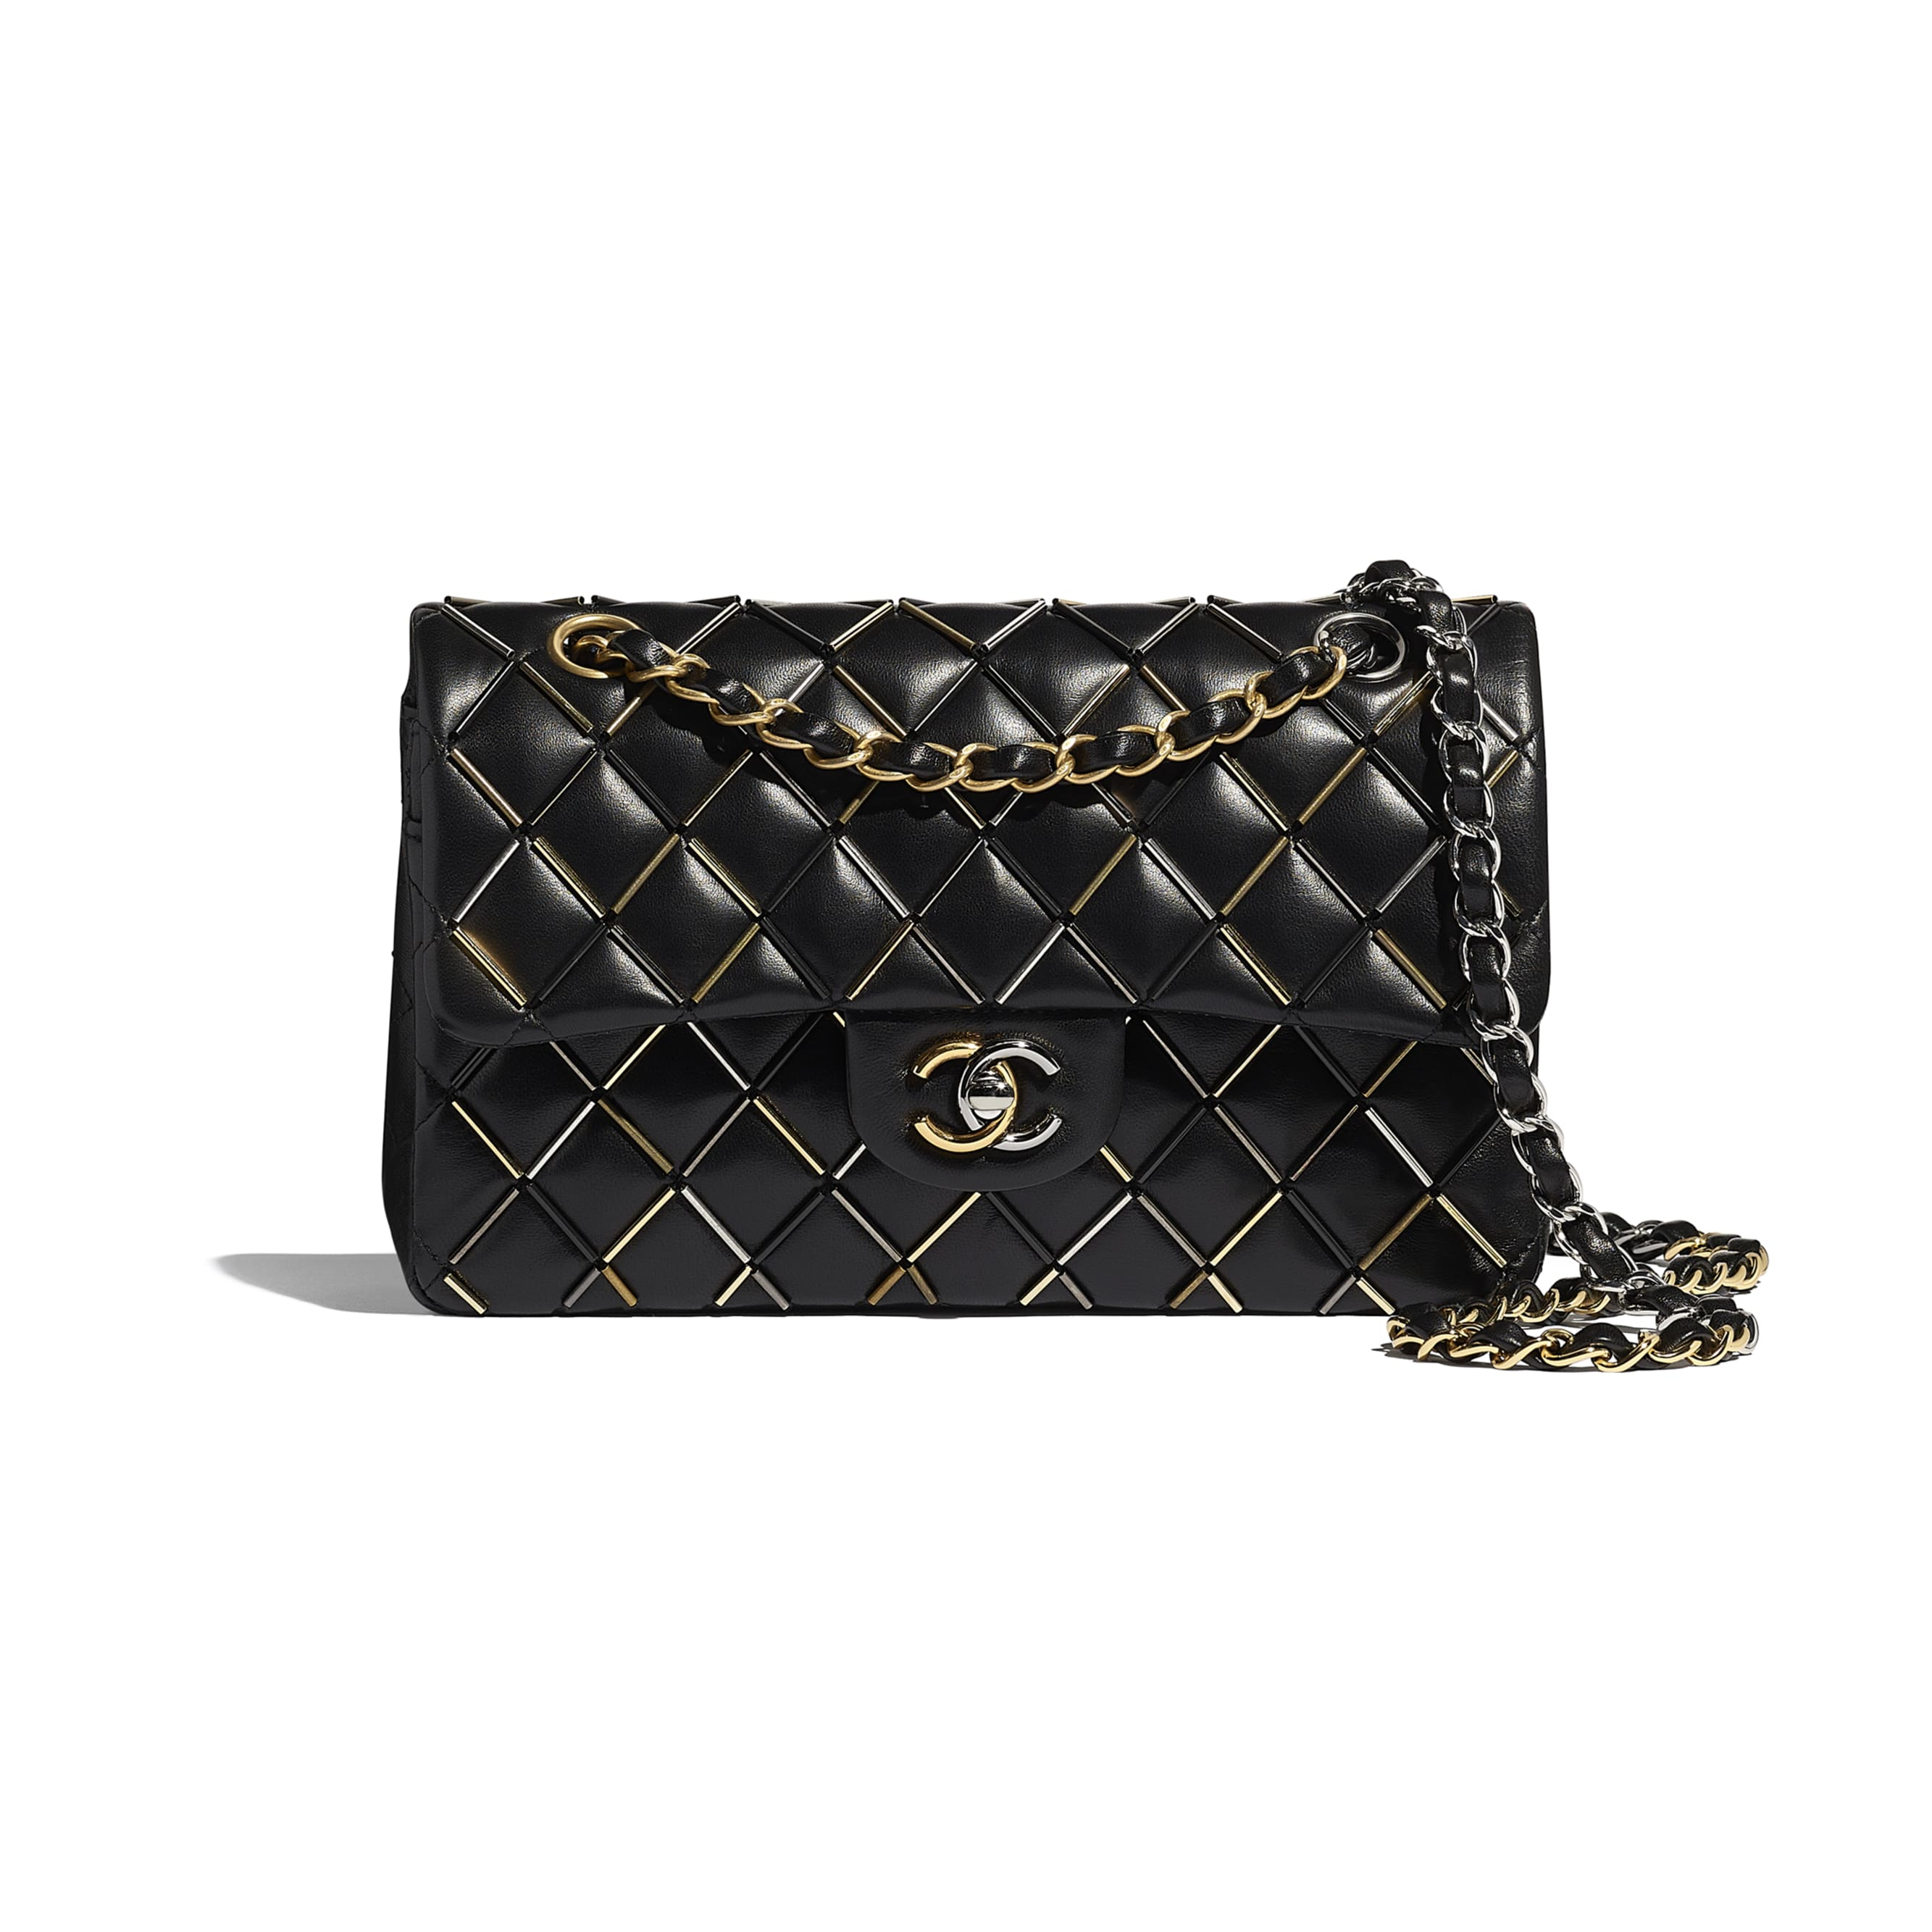 Classic Handbag - Black - Lambskin, Gold-Tone, Silver-Tone, Black & Ruthenium-Finish Metal  - CHANEL - Default view - see standard sized version